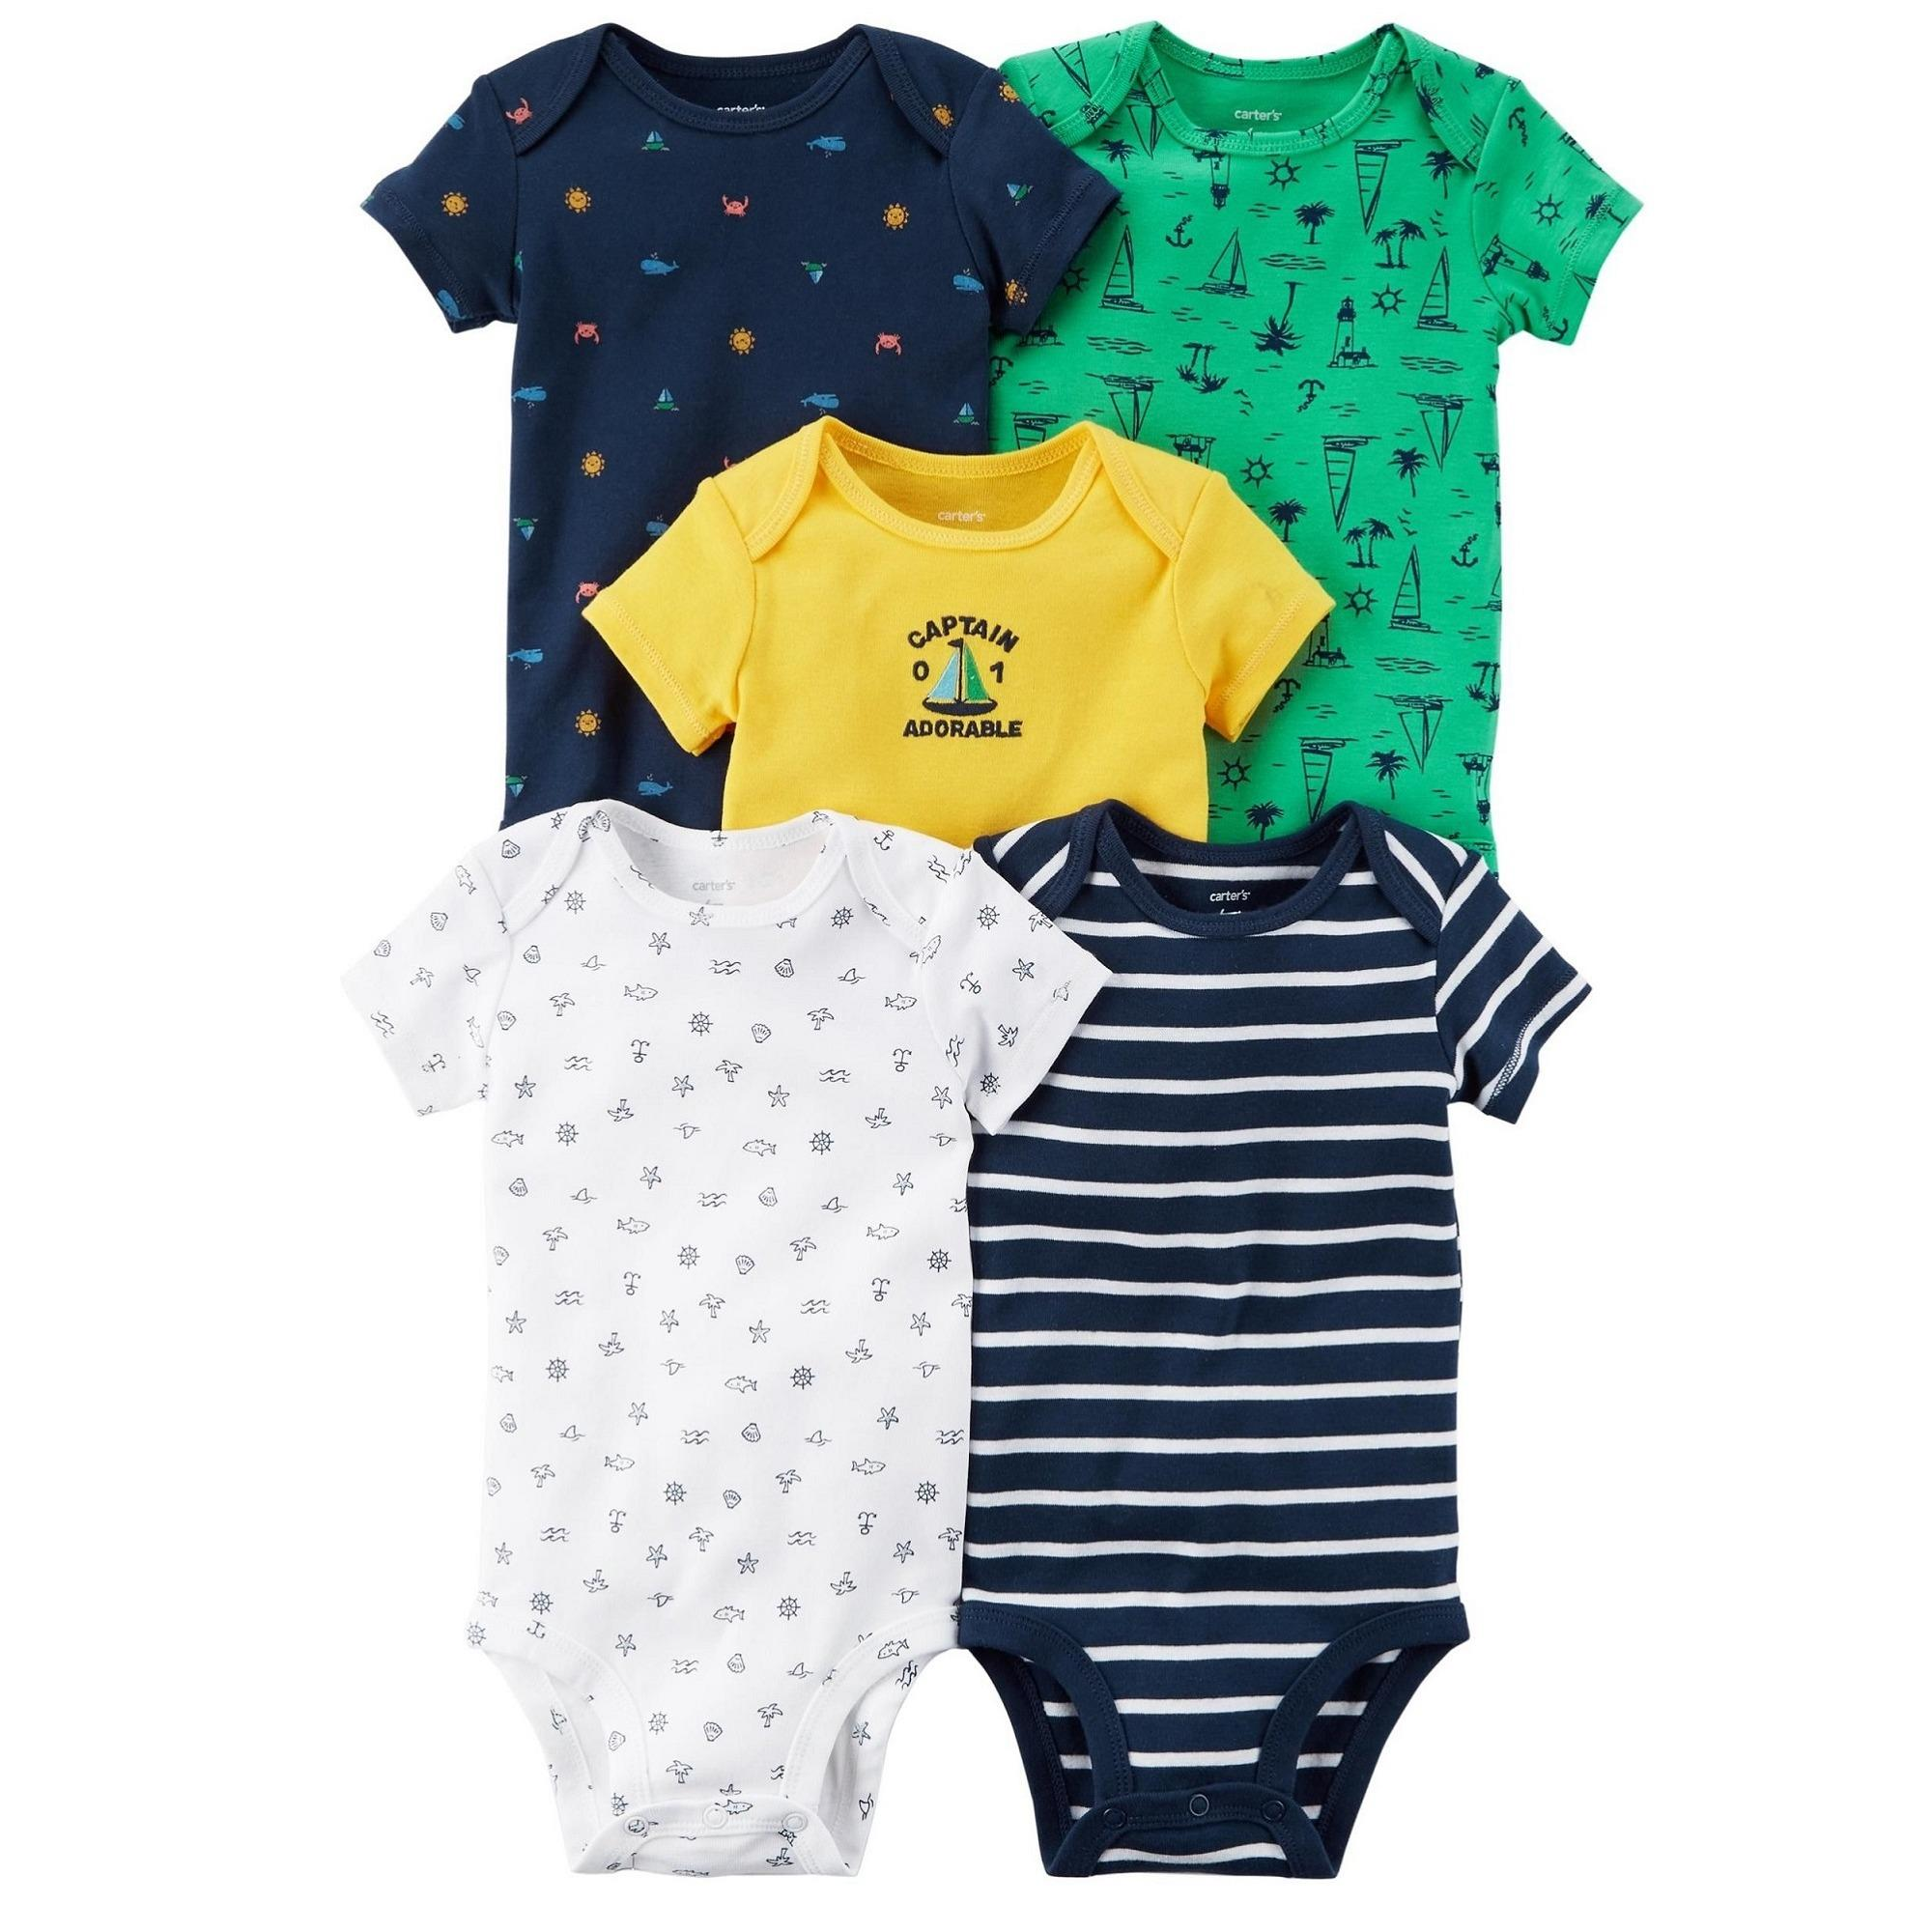 Buy Carter Baby Clothing Accessories Lazada